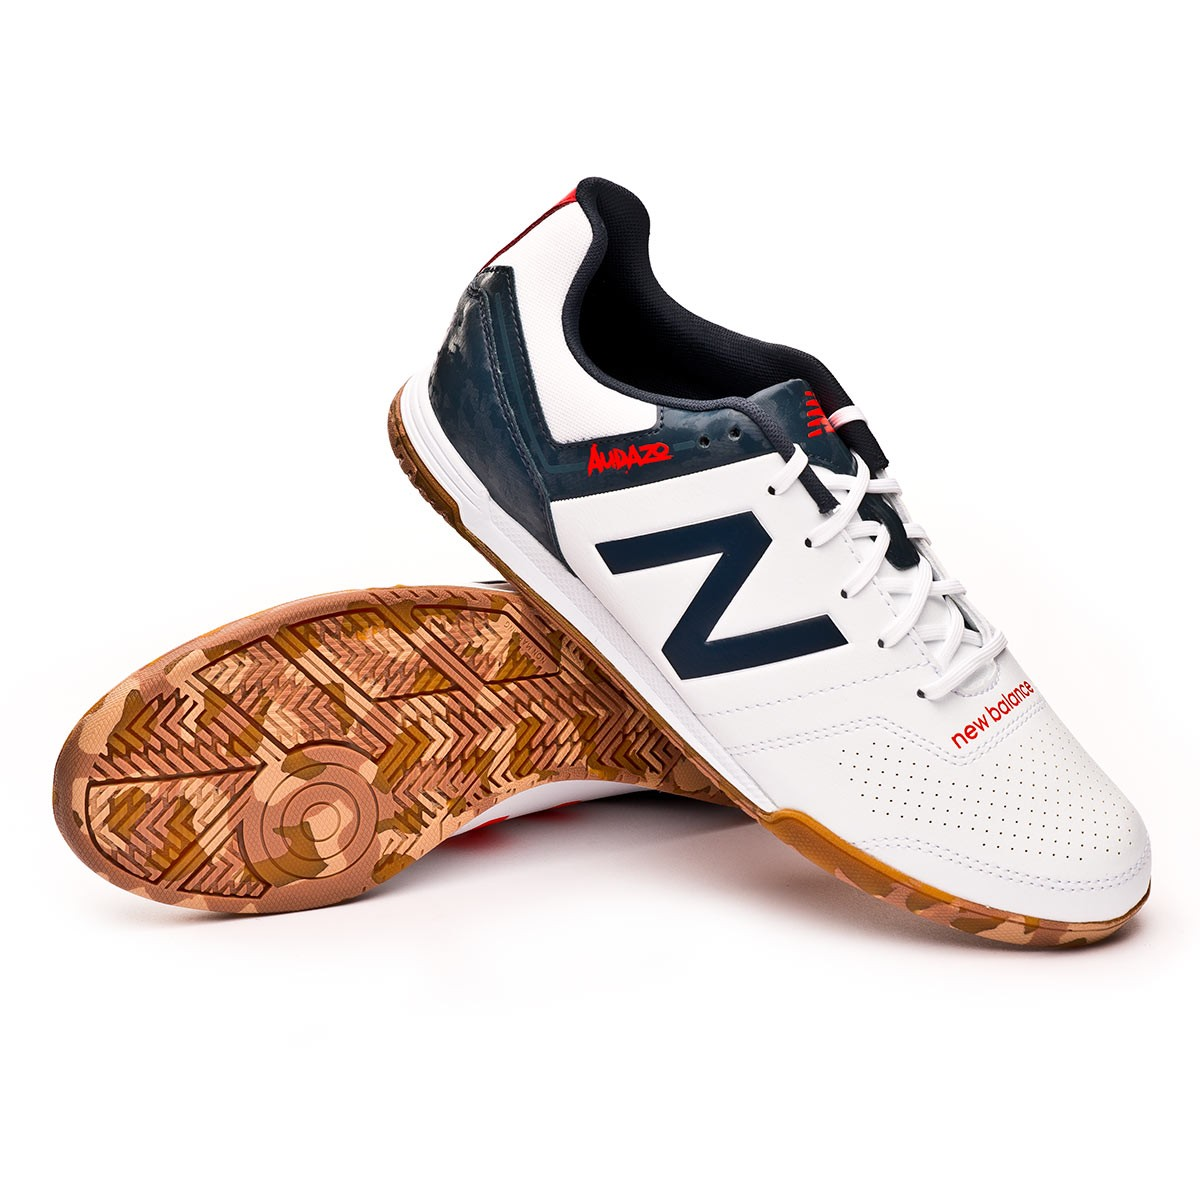 44ef8268c Futsal Boot New Balance Audazo Strike 3.0 Futsal White grey - Football  store Fútbol Emotion